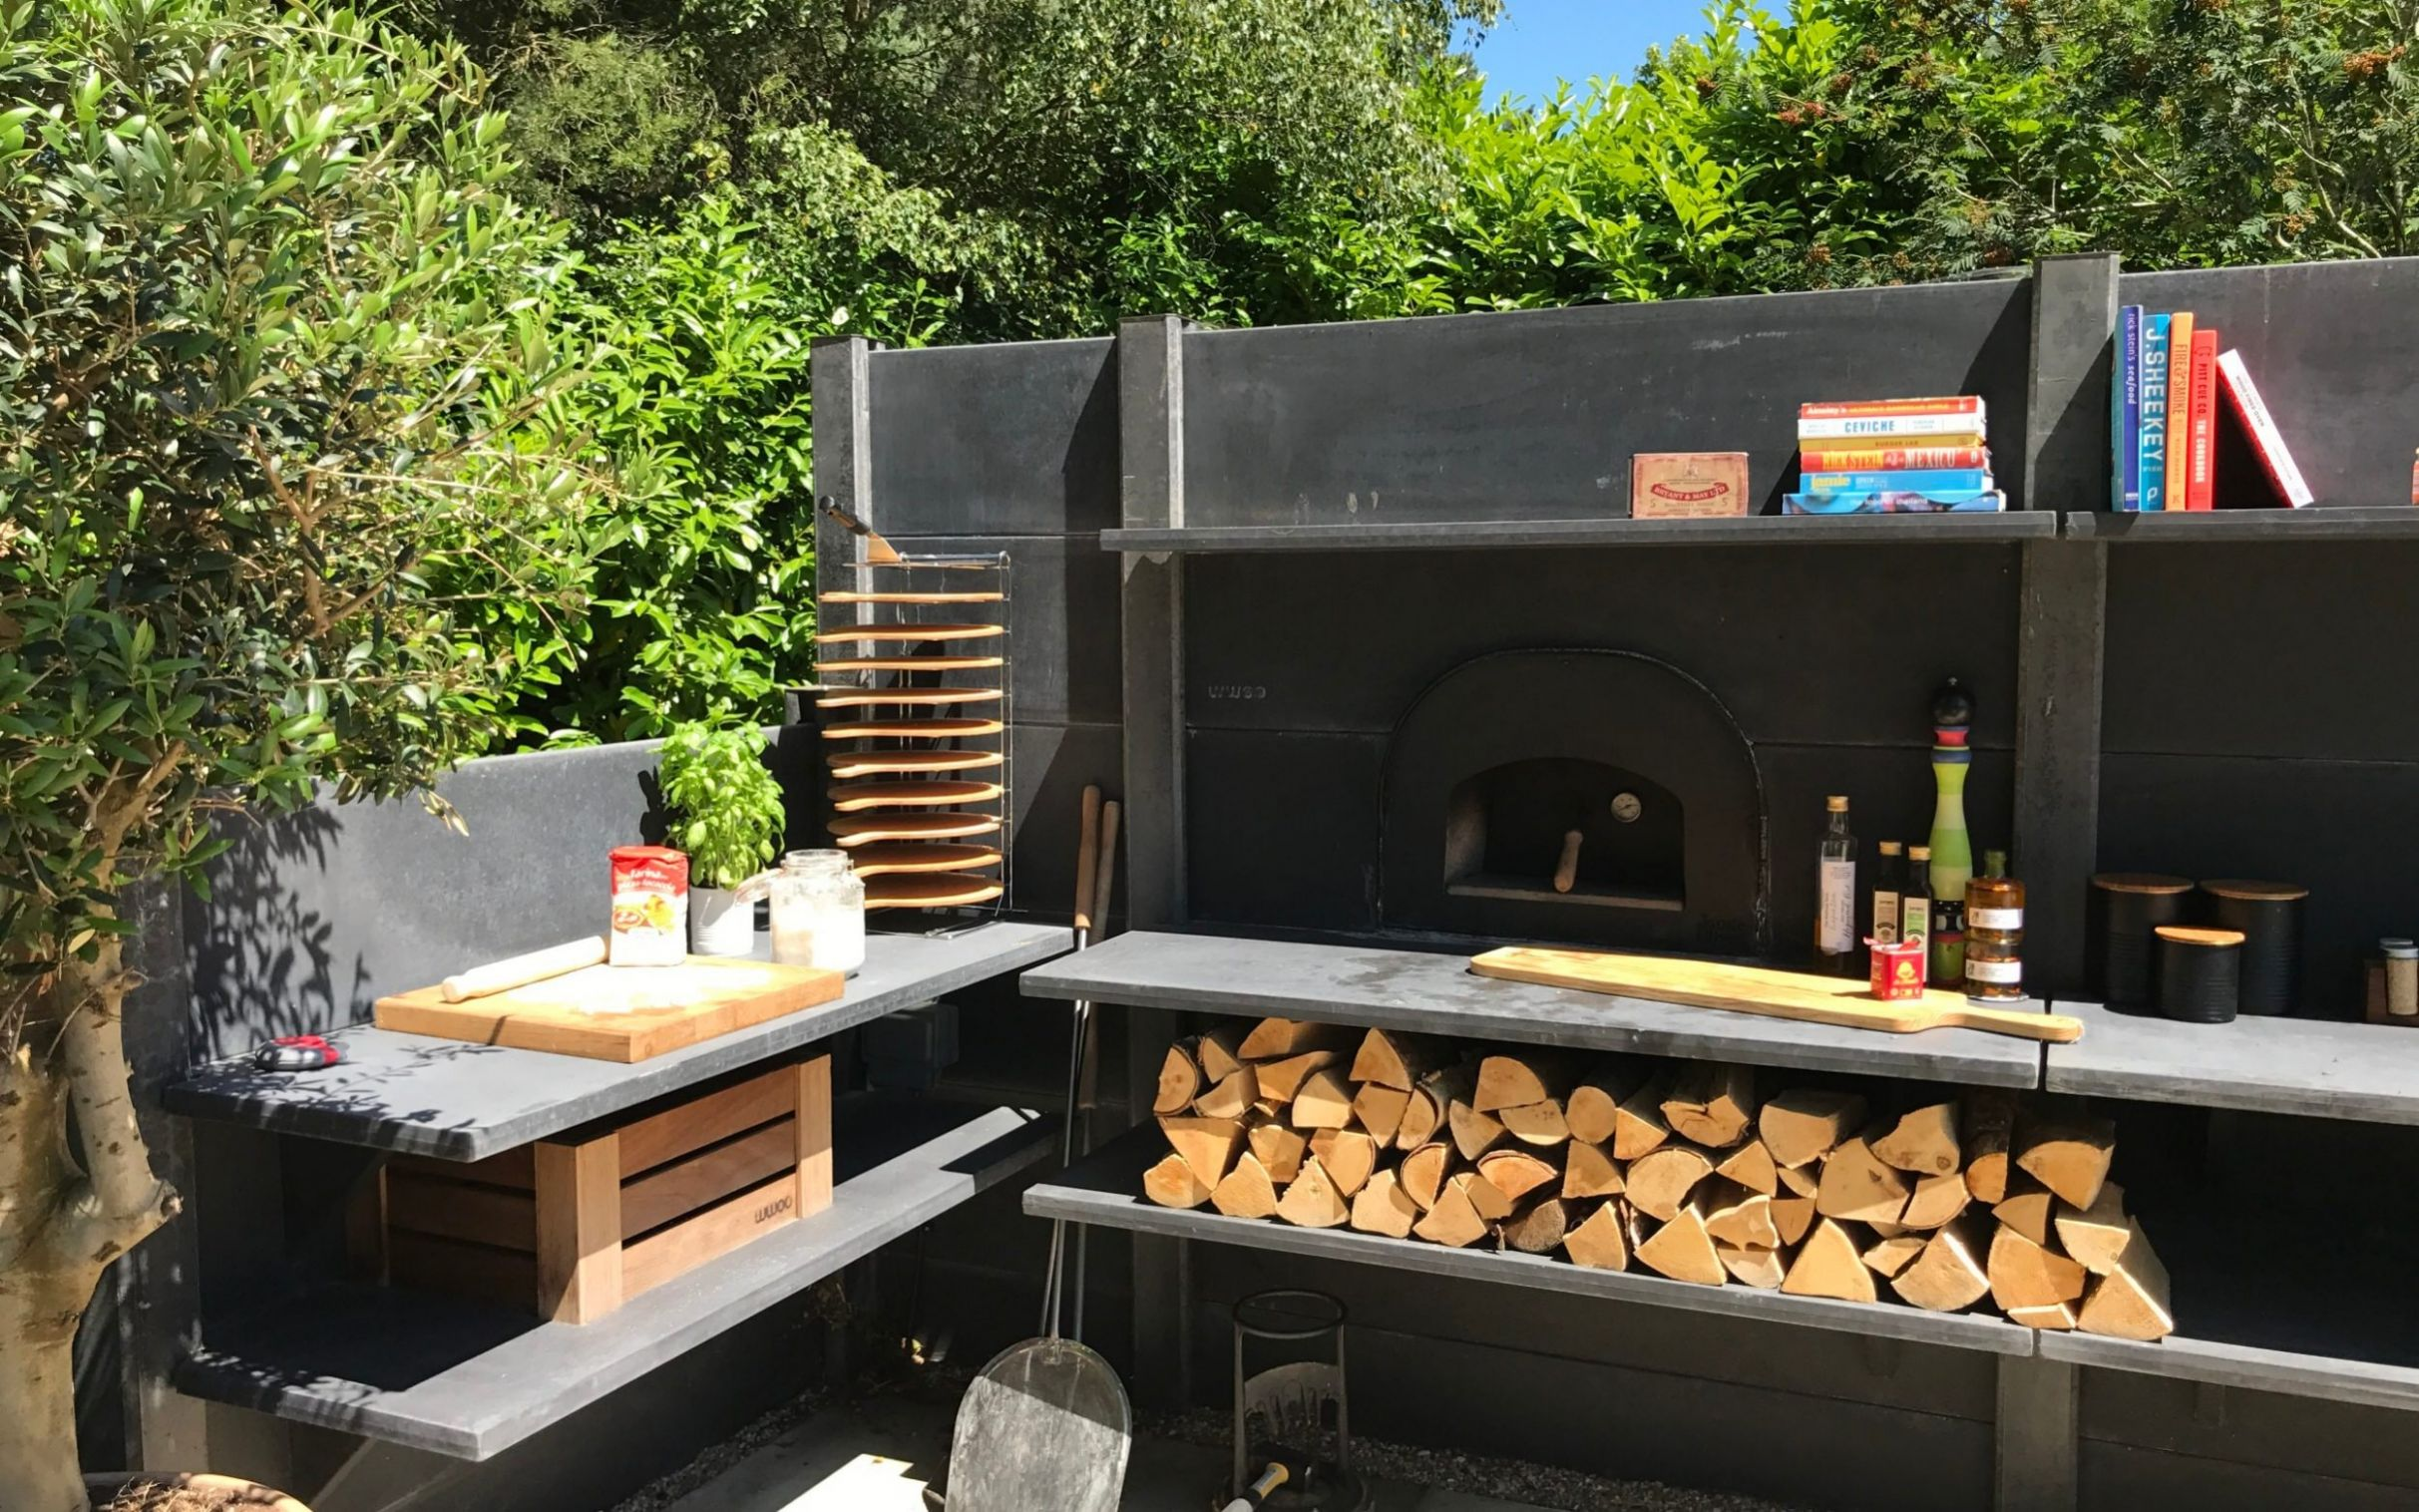 How to use your barbecue all year round: set up an outdoor kitchen - garden kitchen ideas uk